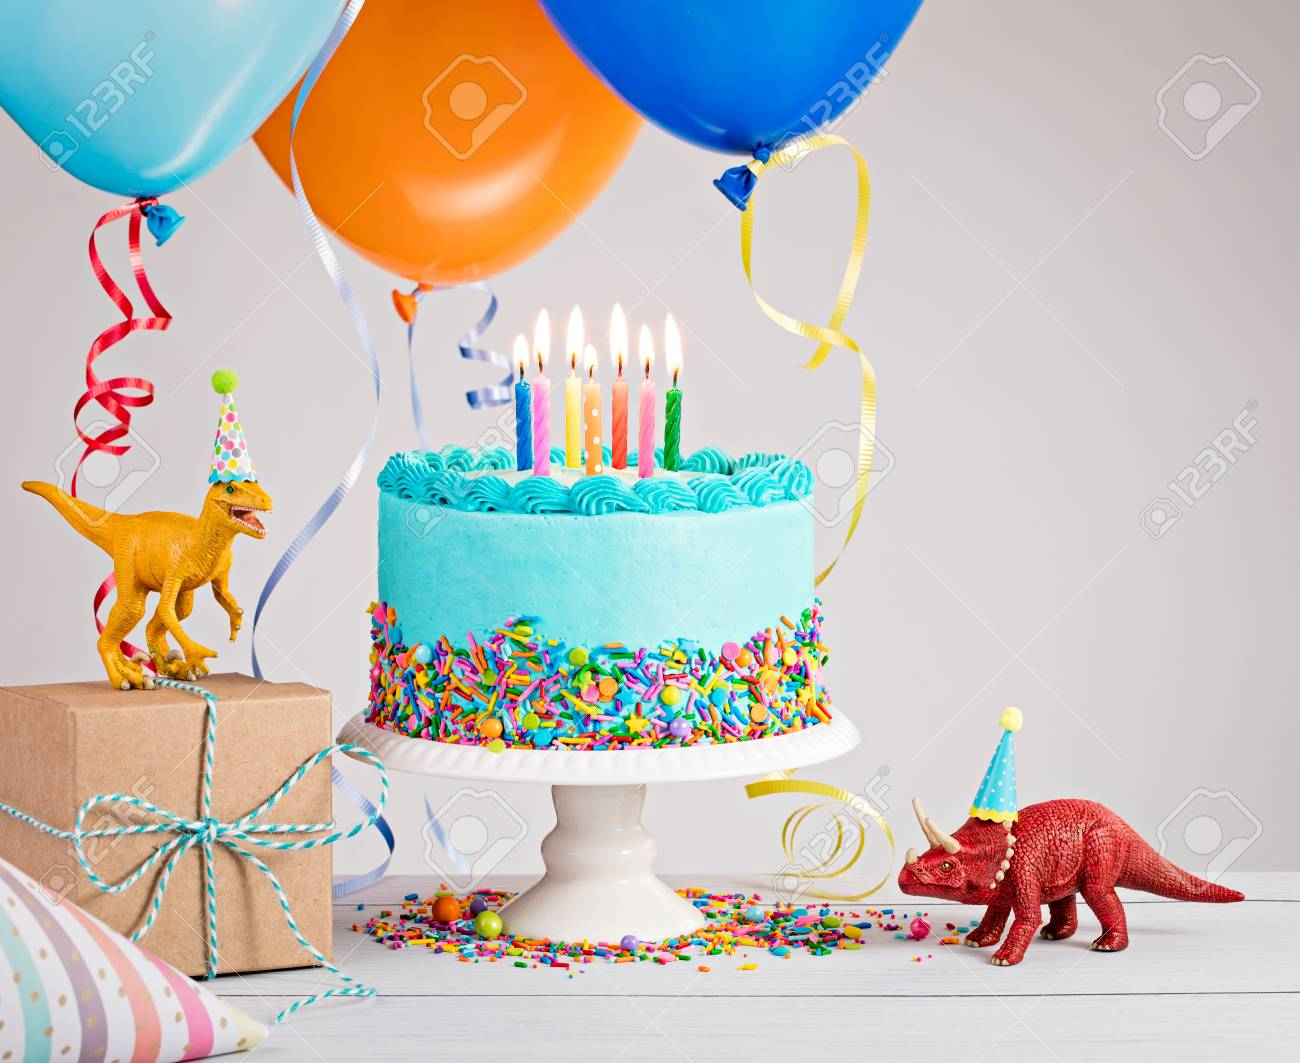 picture of birthday party scene ; 80428227-childs-birthday-party-scene-with-blue-cake-gift-box-toy-dinosaurs-hats-and-colorful-balloons-over-li